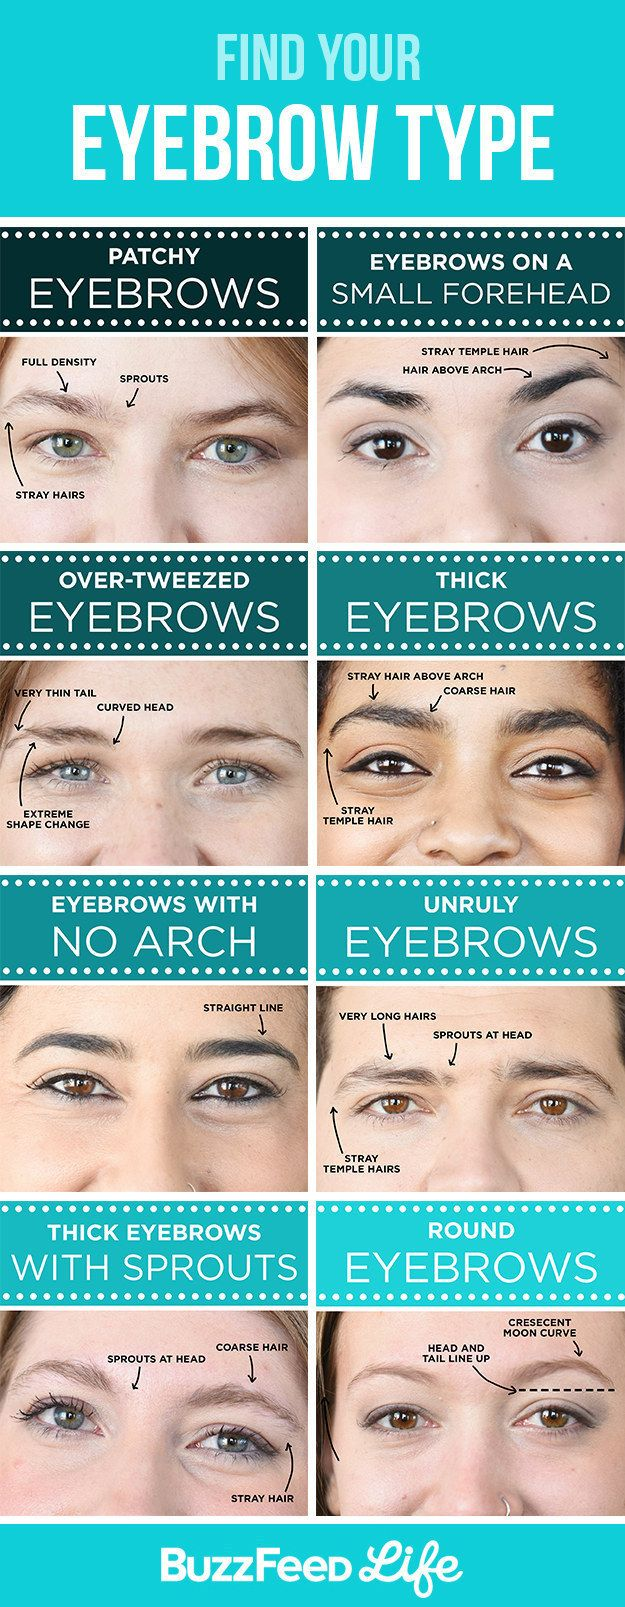 Now, for the specifics. The eyebrow type you have will determine your grooming details.